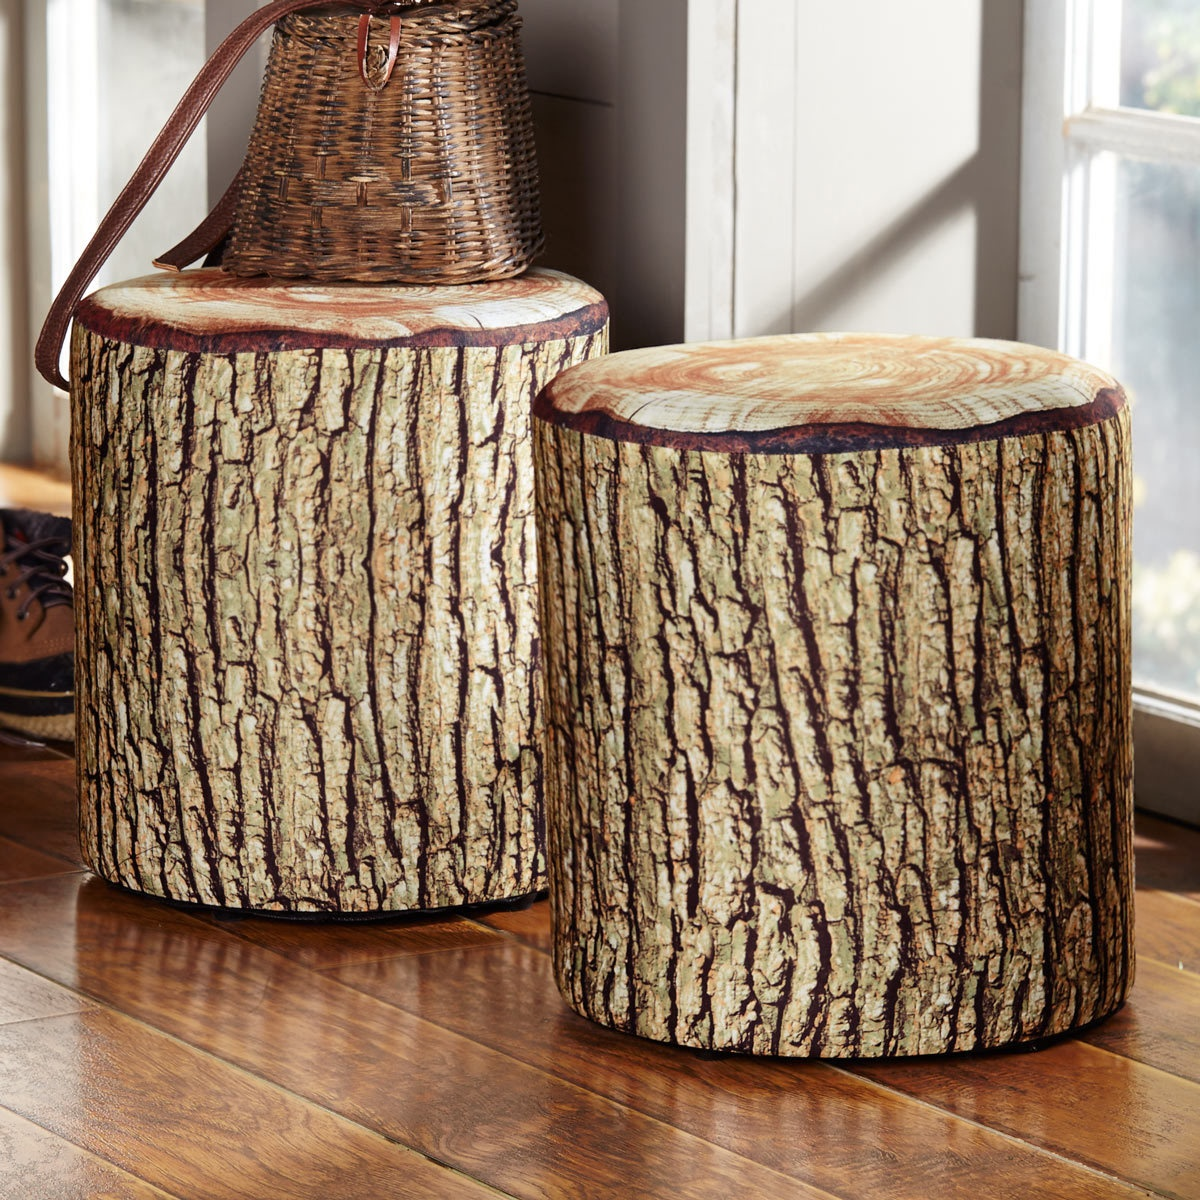 rustic accent furniture with moose bear designs black forest decor cushioned tree bark log seat wood table fire pit set oriental desk lamp modern occasional tables pier imports